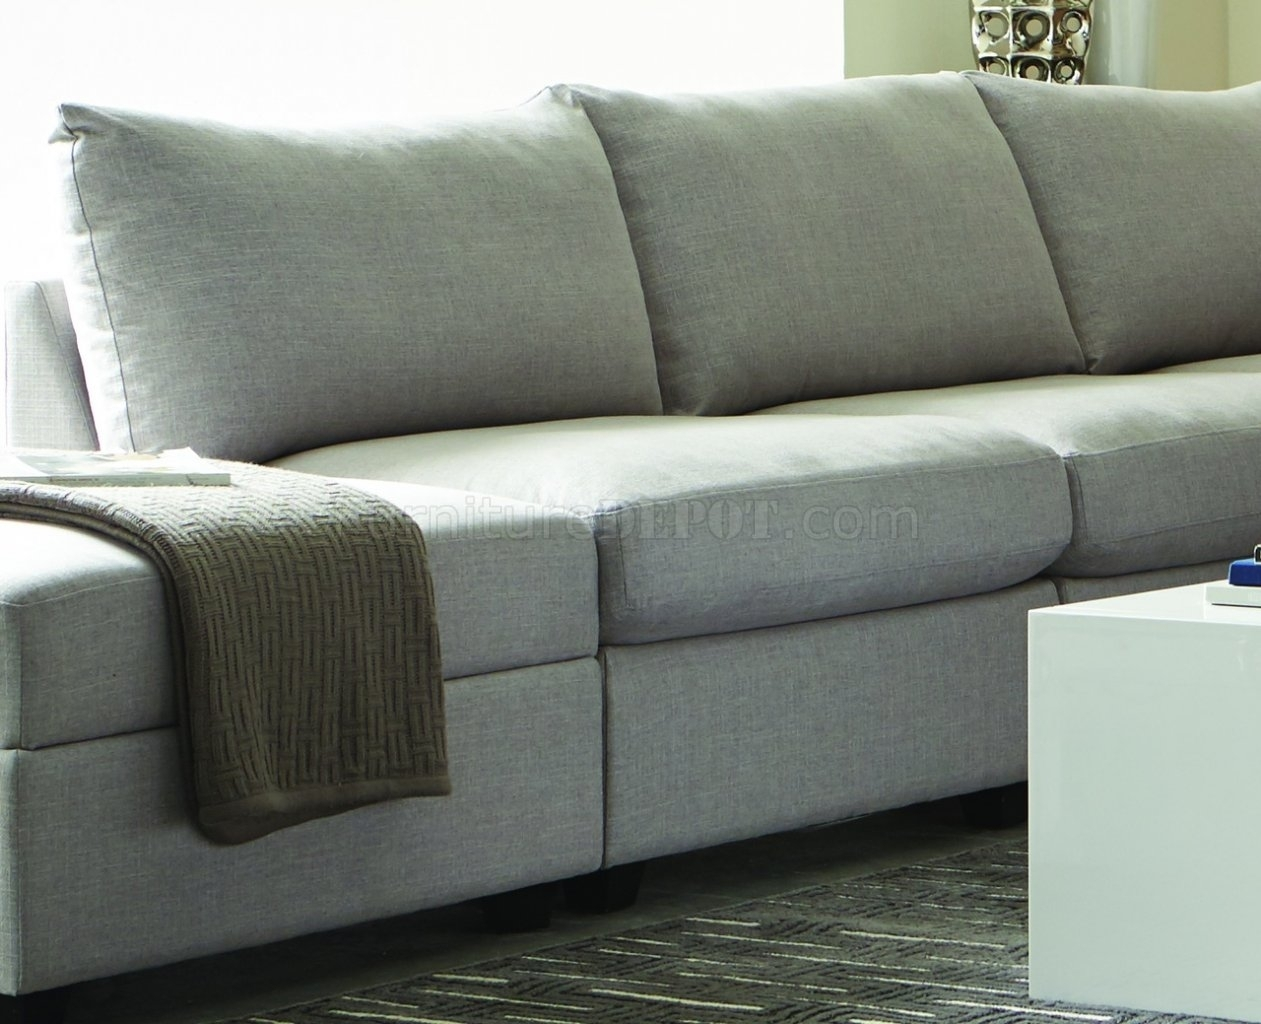 Charlotte 551221 – Scott Living – Coaster – Grey Sectional Inside Charlotte Sectional Sofas (View 2 of 10)